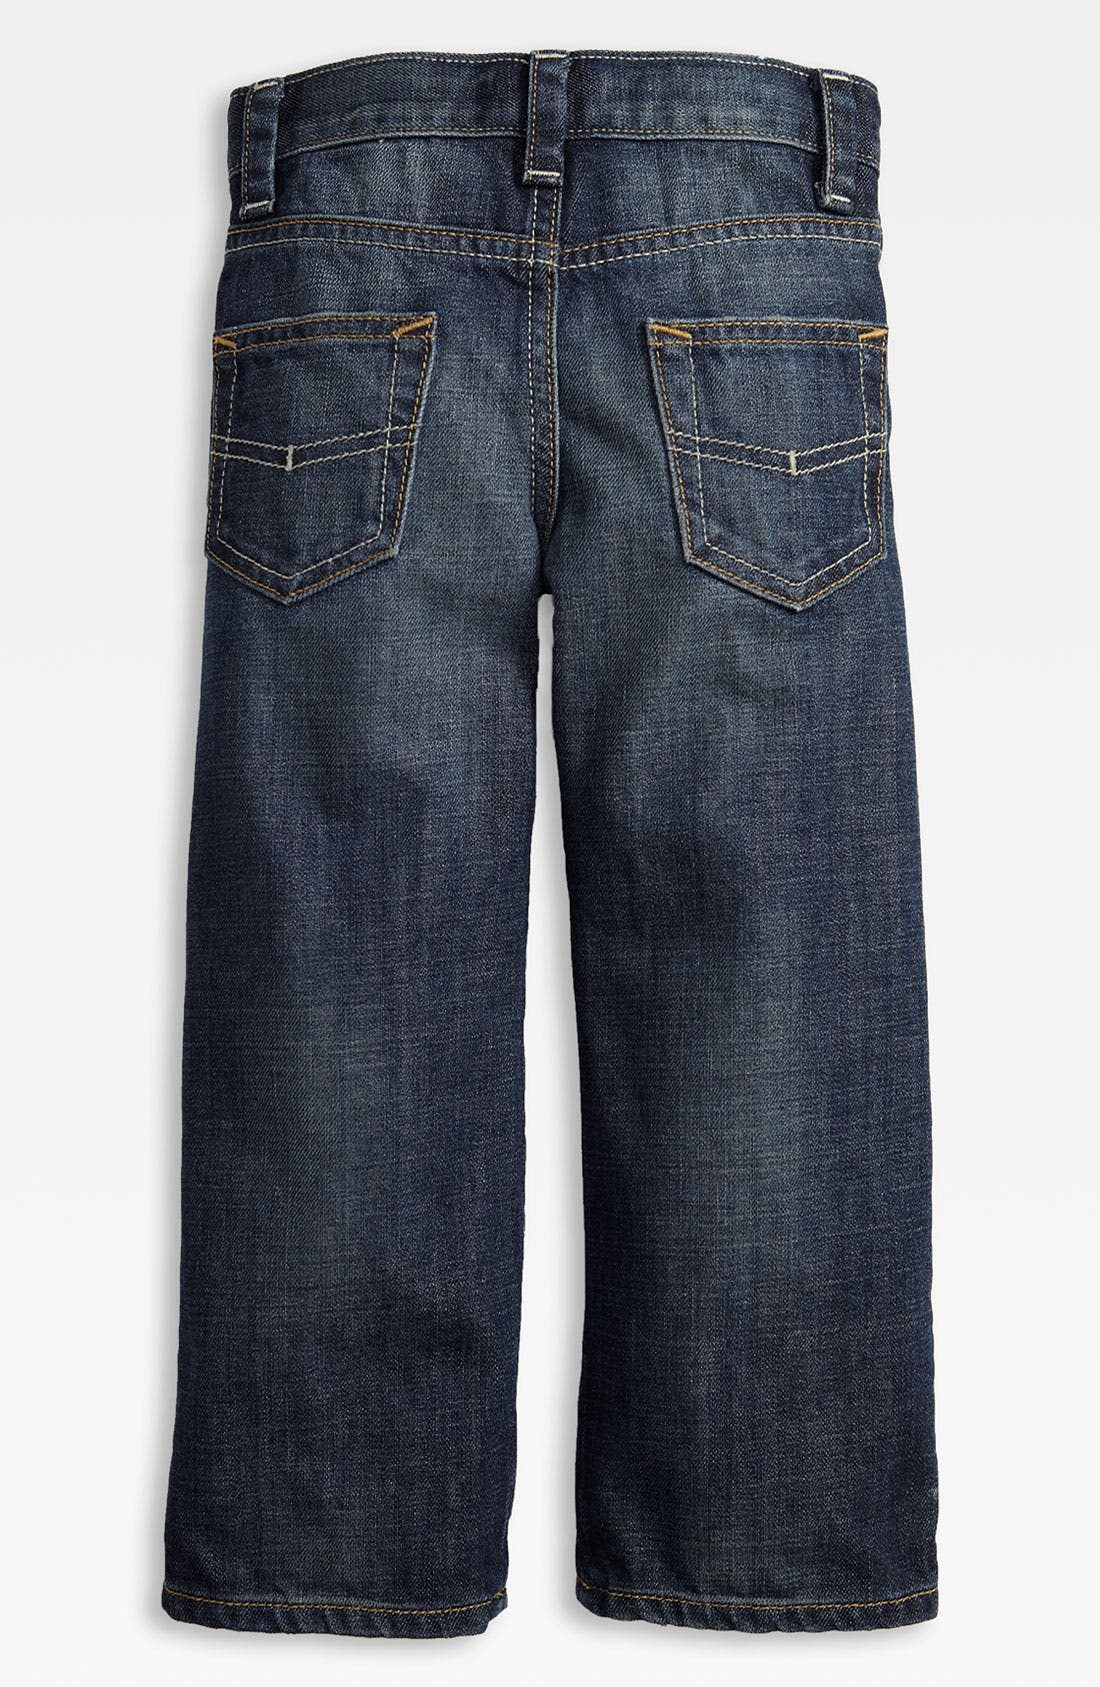 Alternate Image 1 Selected - Tucker + Tate 'Tucker' Jeans (Toddler)